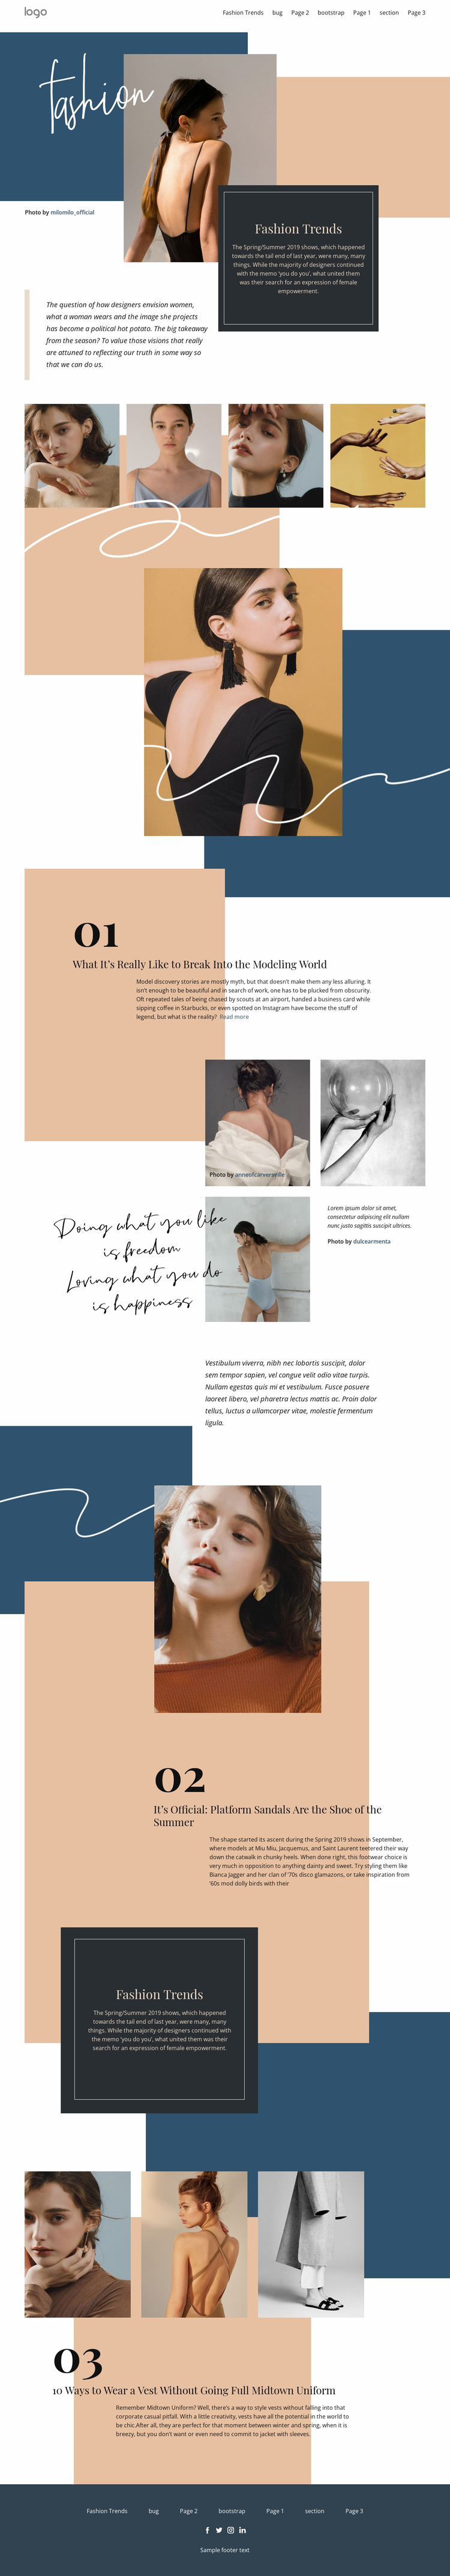 Innovative trends in fashion  Website Mockup